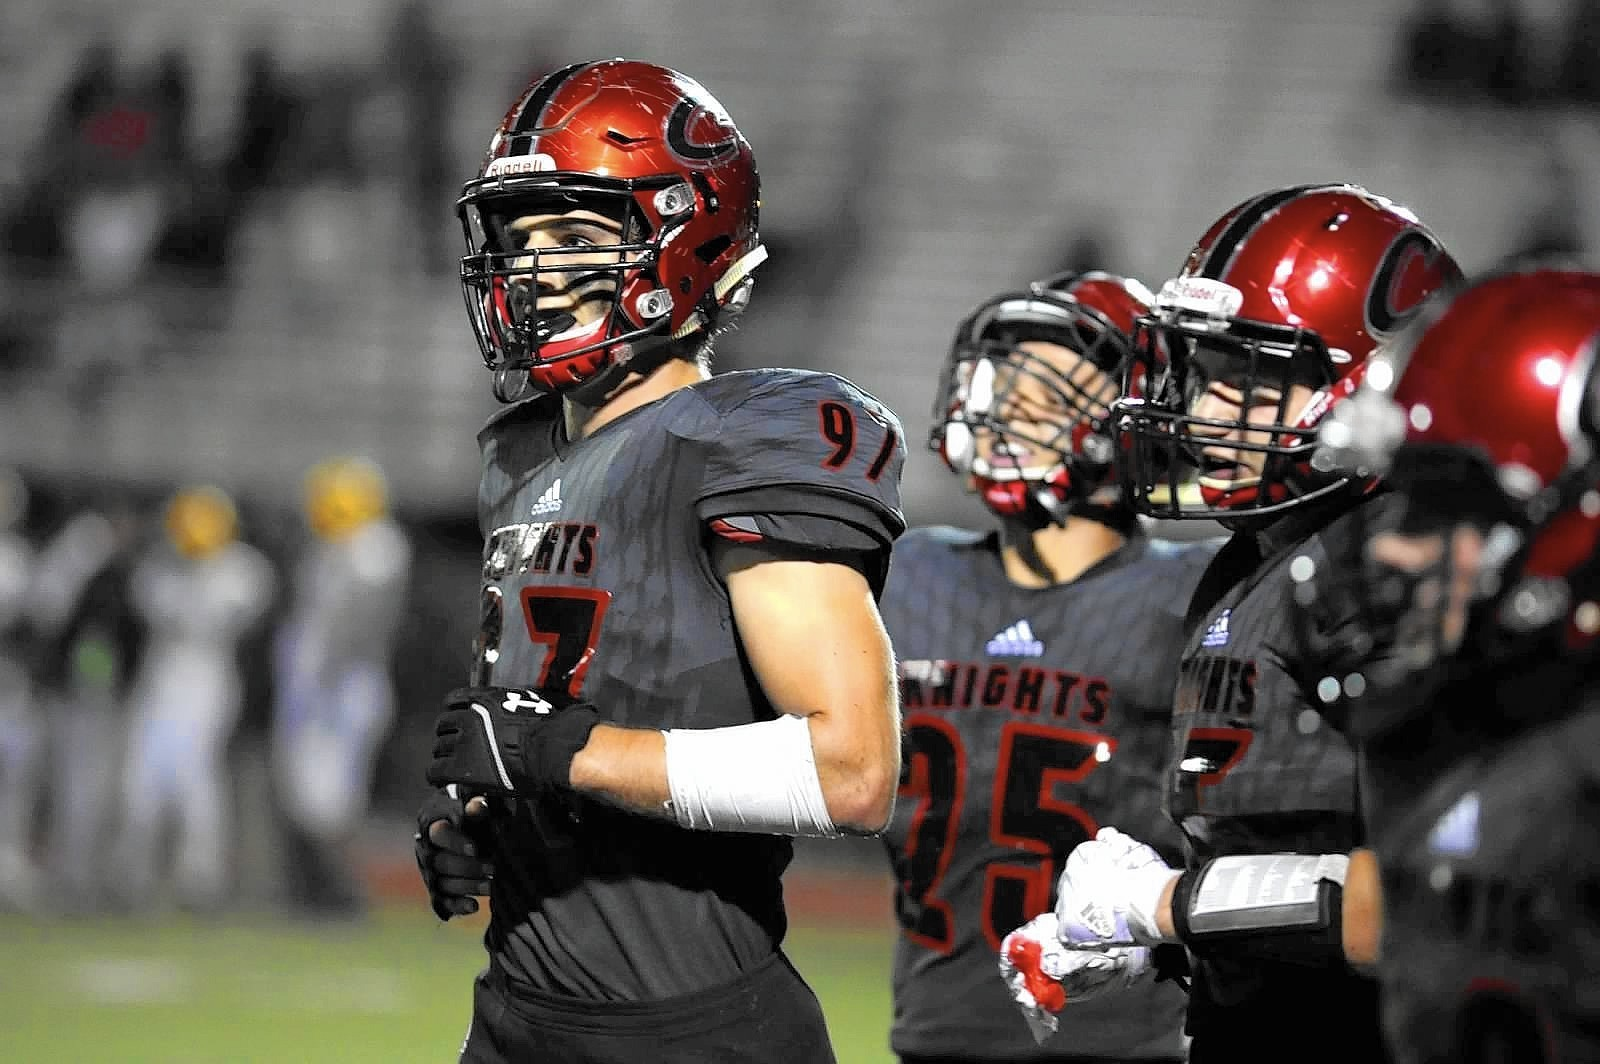 Lincoln Way Central S Mike Cepolski Turns Into Disruptive